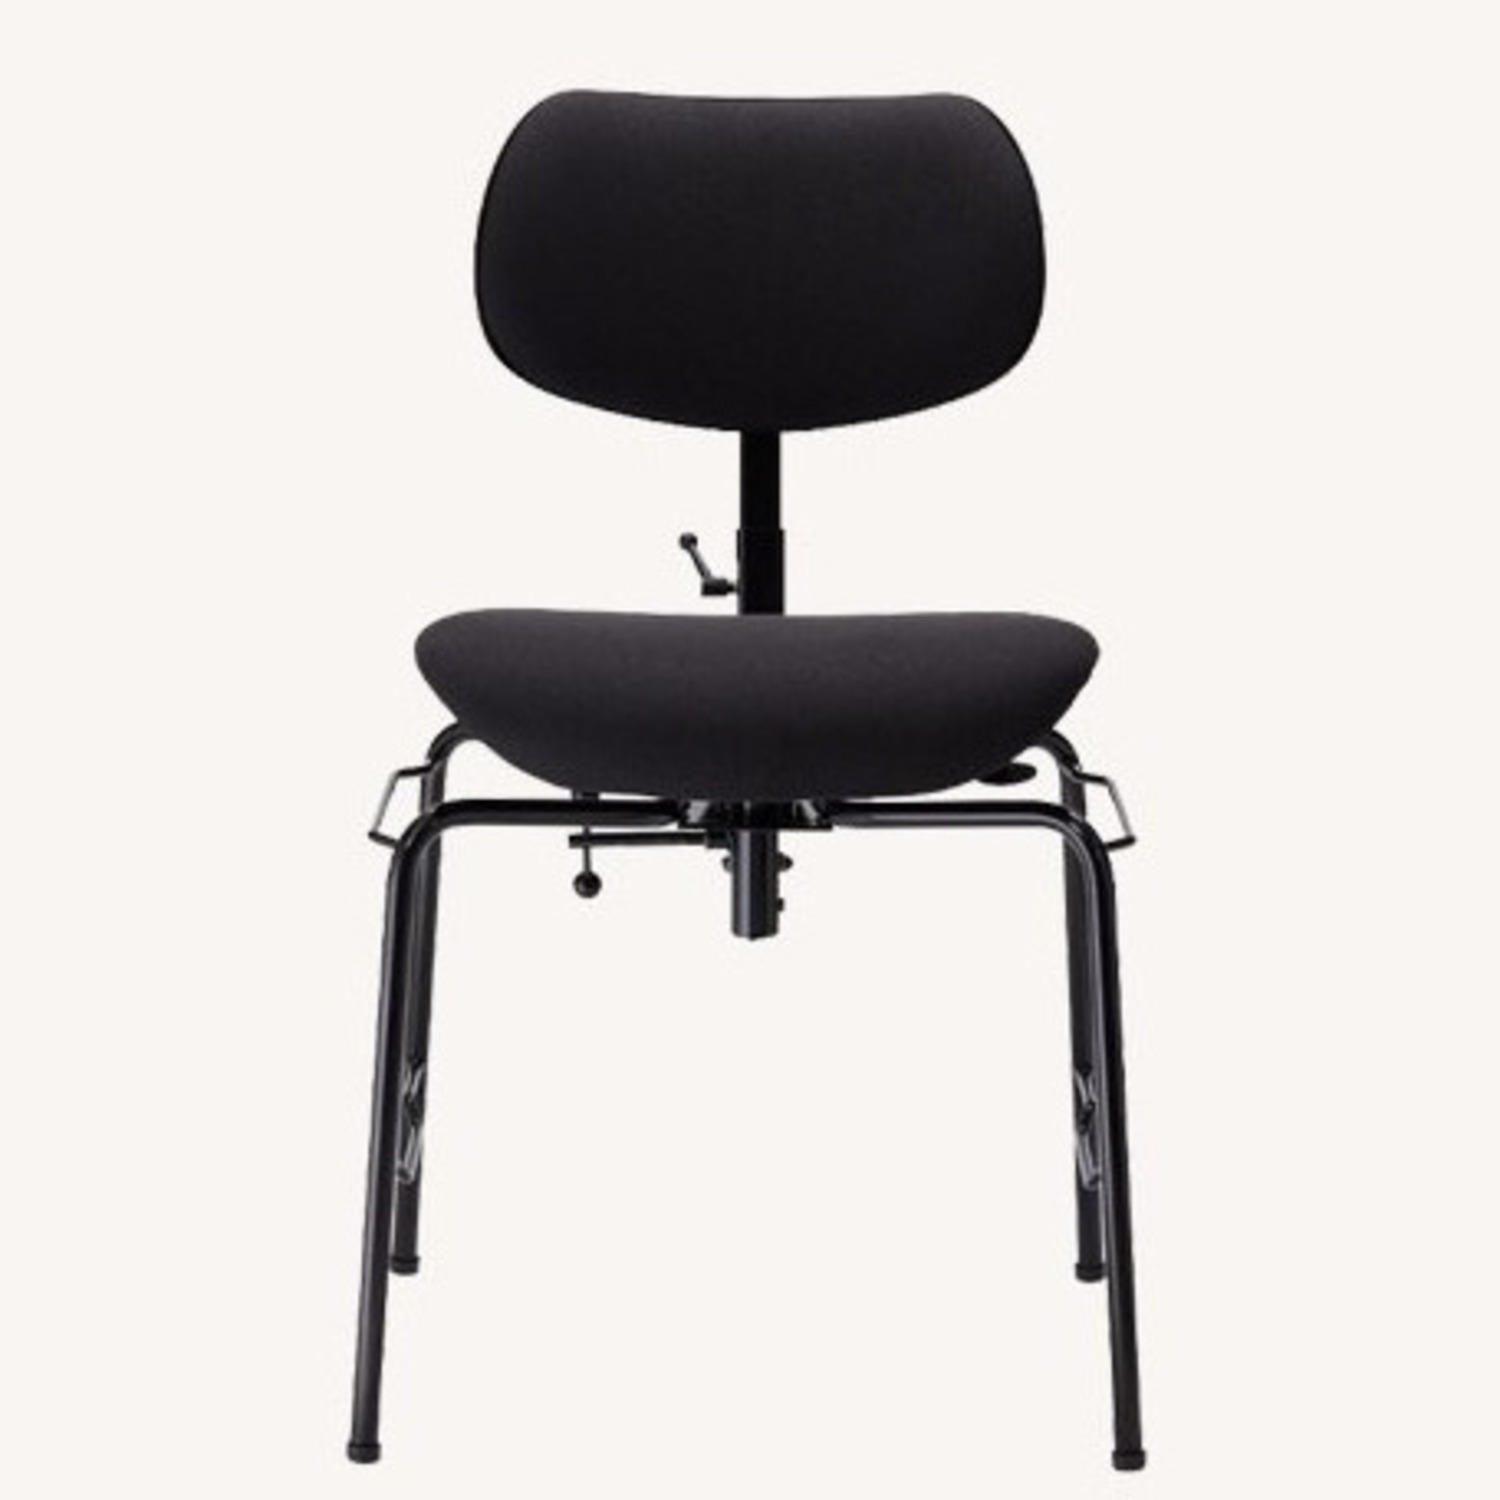 "Wilde + Spieth ""Orchestra"" Chair Black - image-0"